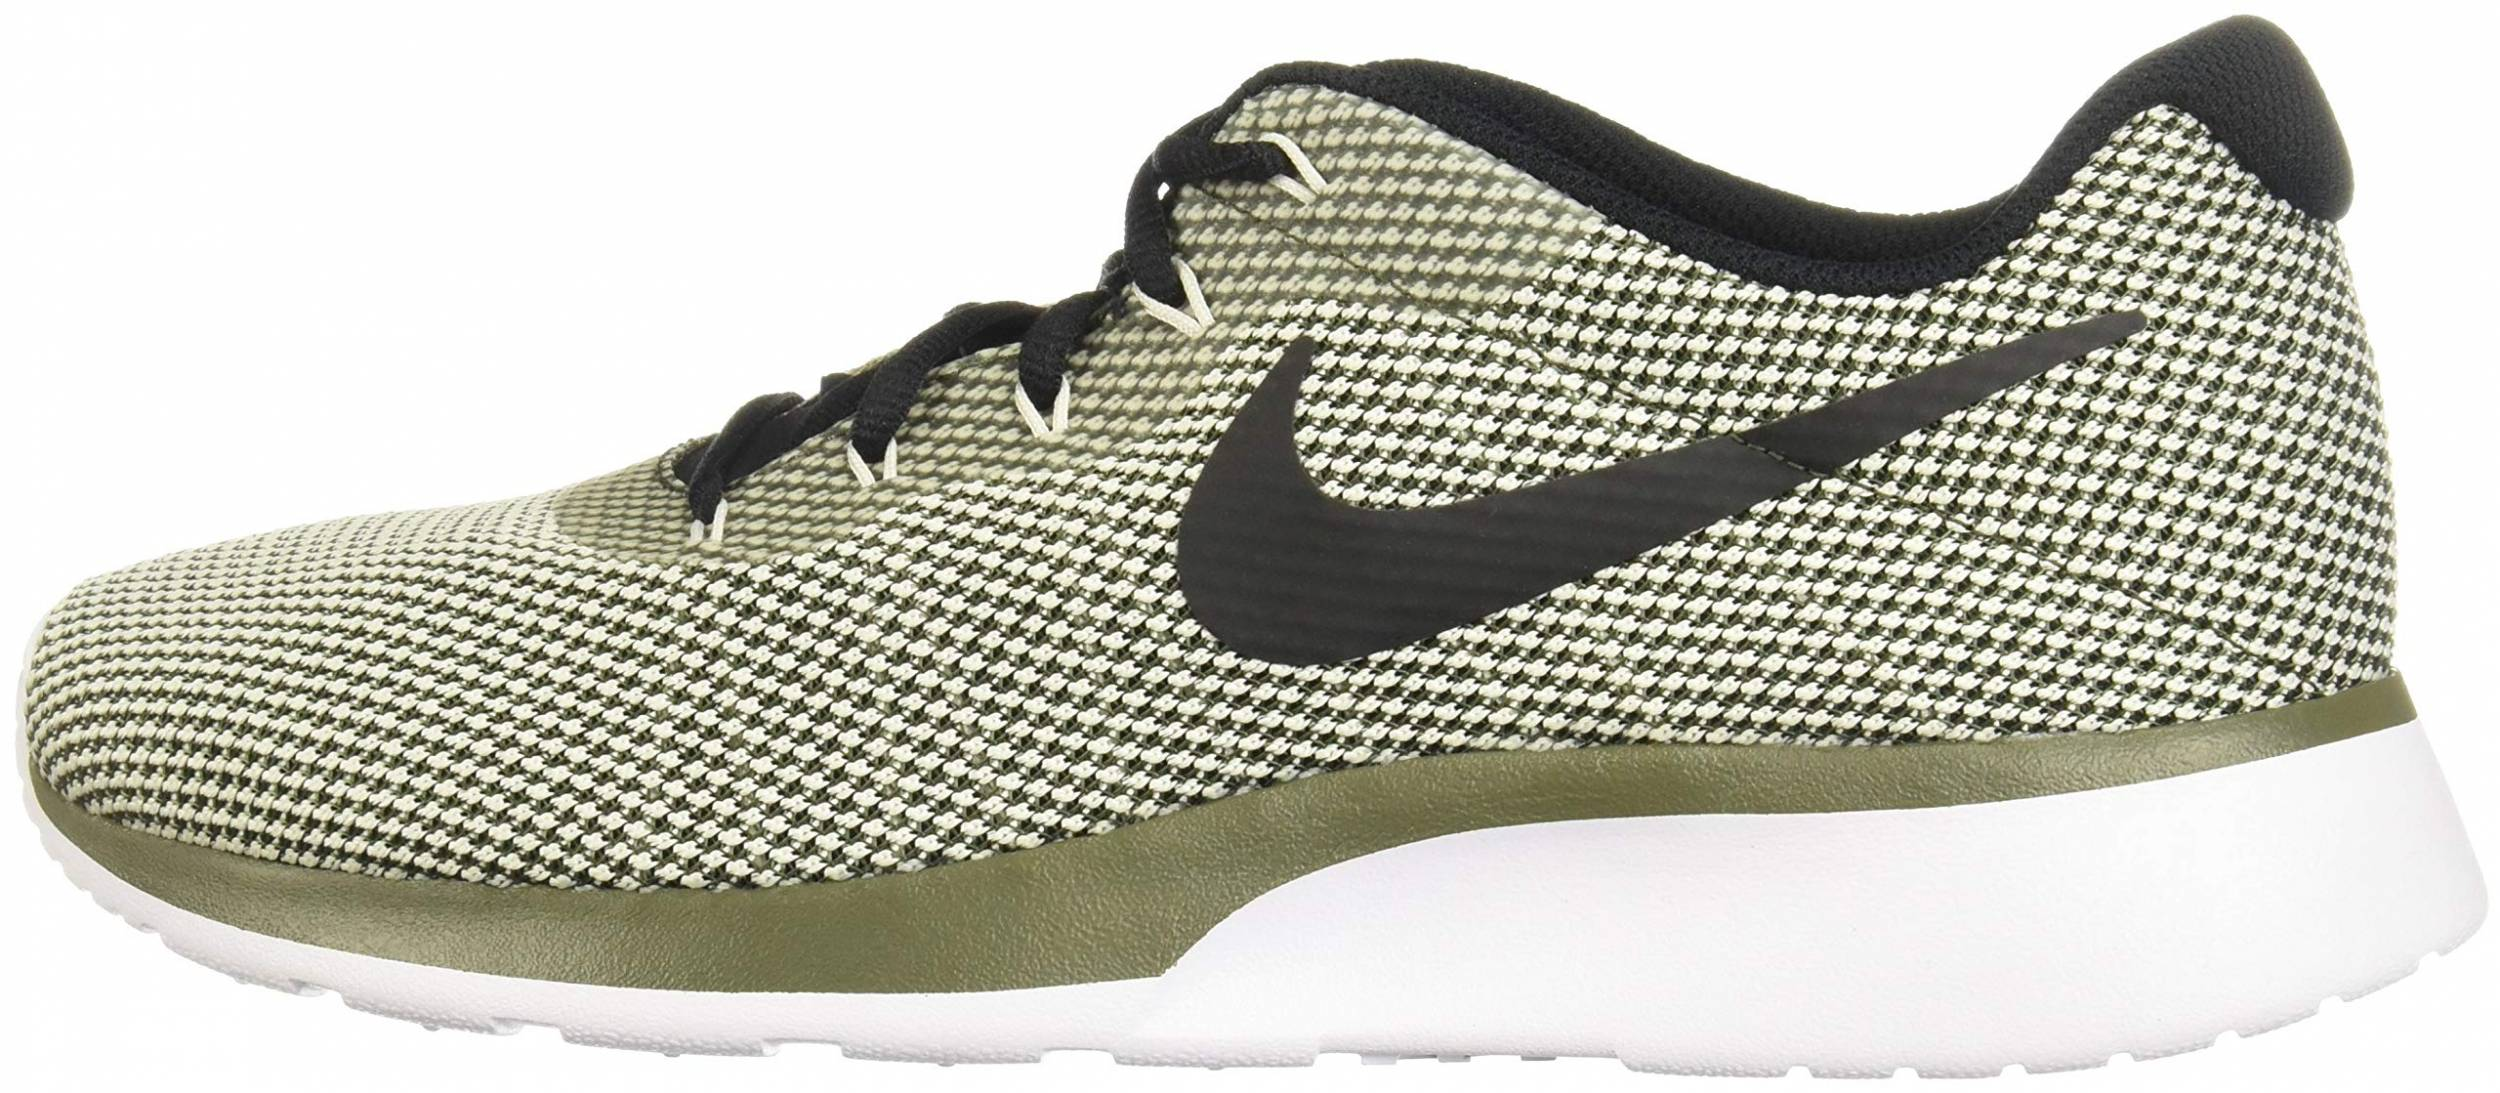 Only $48 + Review of Nike Tanjun Racer